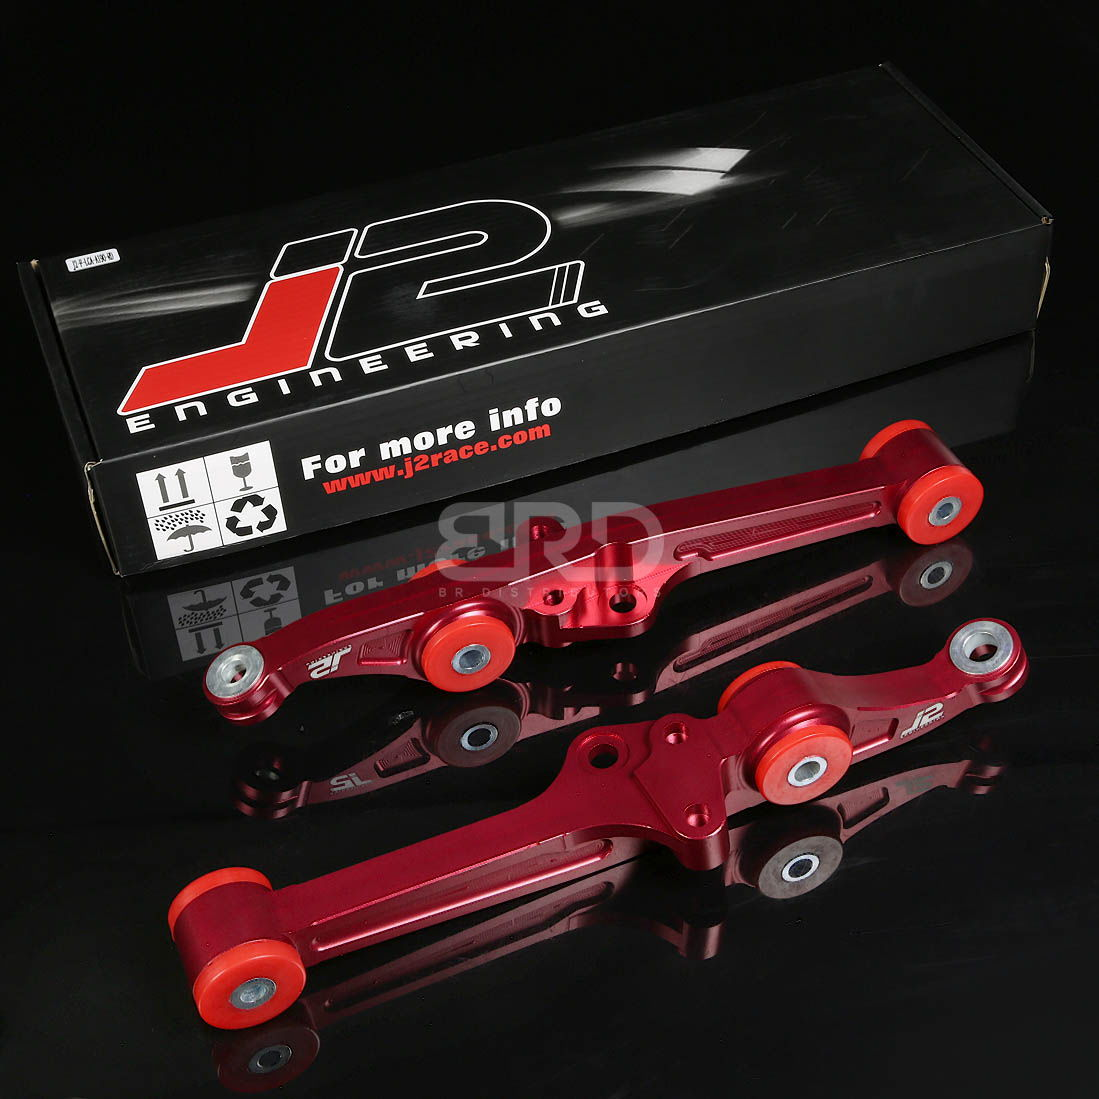 88-91 Honda Civic/CRX And 90-93 Acura Integra Front Lower